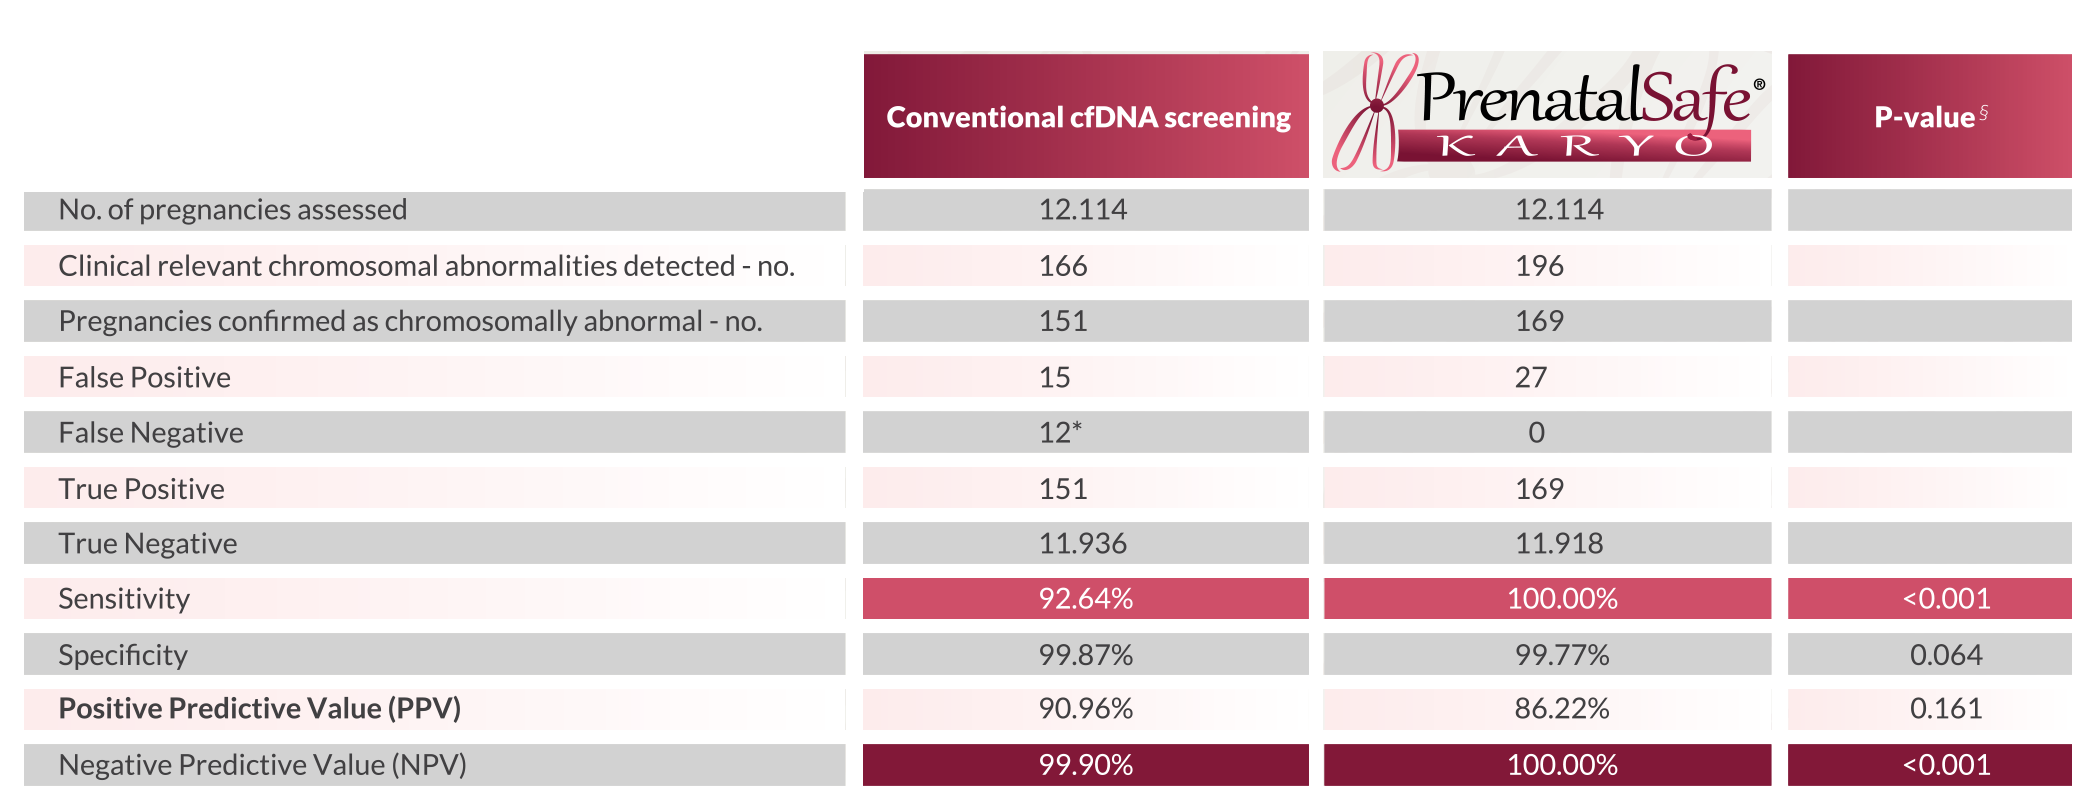 conventional cfDNA screening vs PrenatalSAFE Karyo